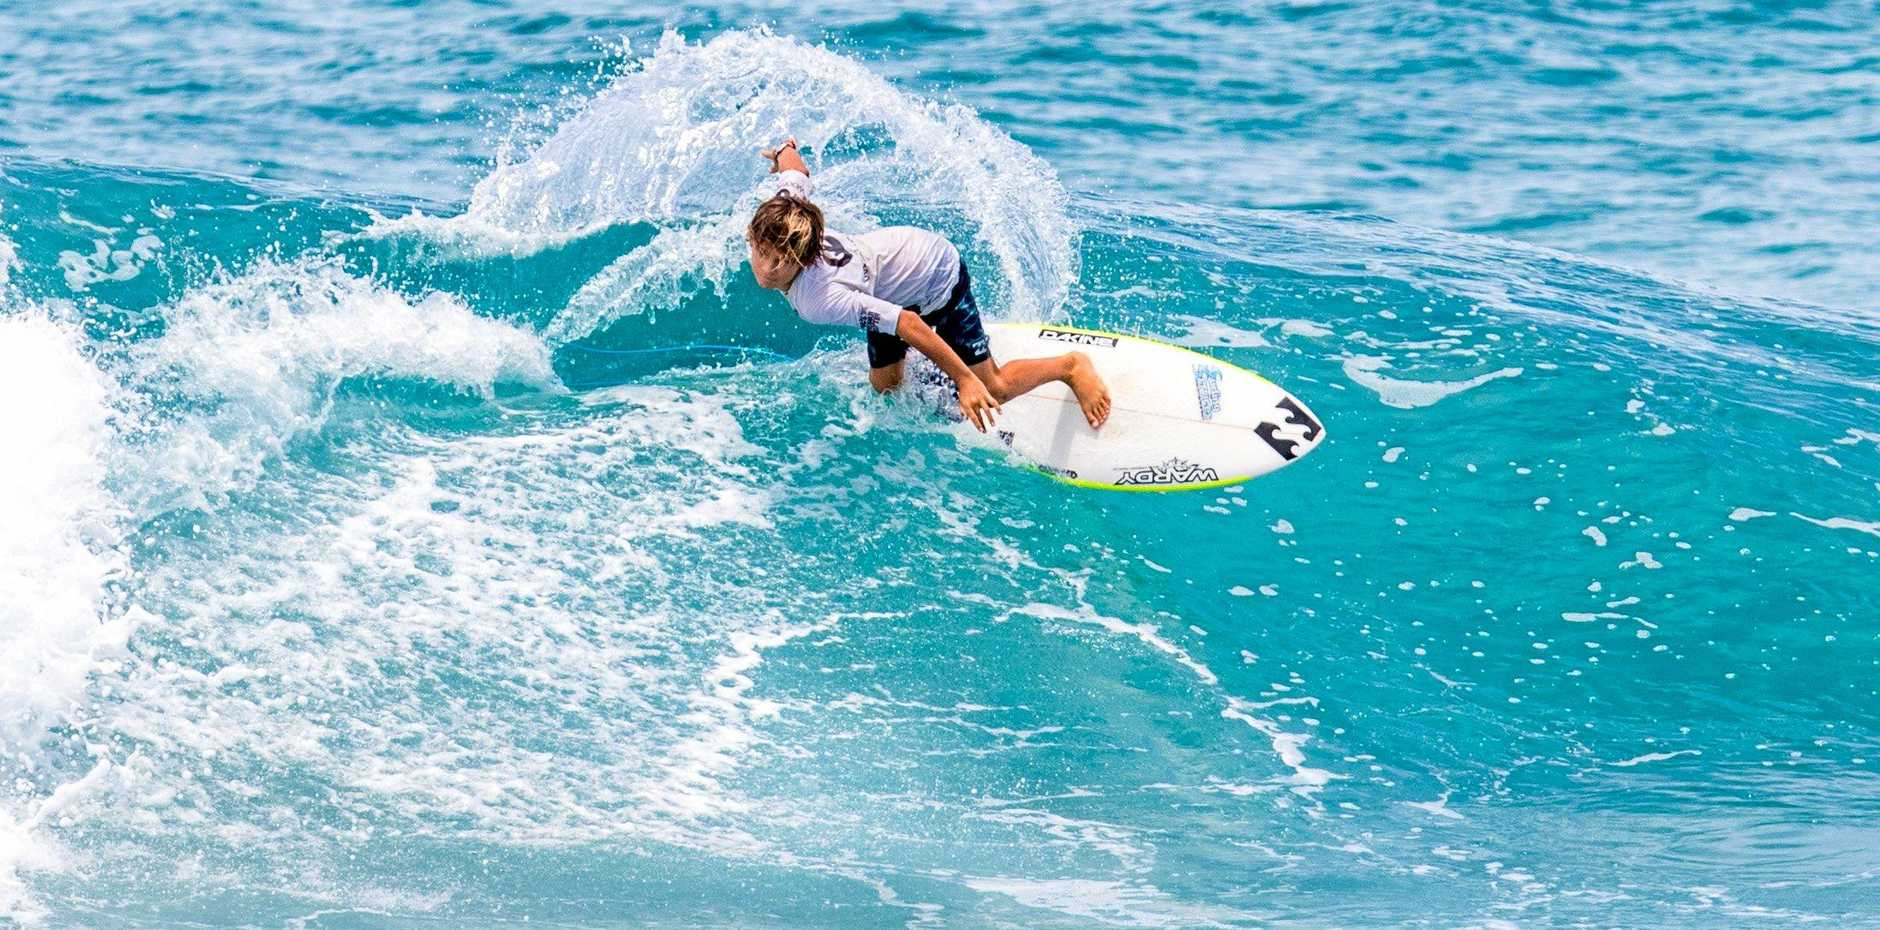 FAMILY TIES: Ty Richardson surfed with his uncle Joel Parkinson to win the Family Teams event at the Eager Beaver surf charity event last year at Palm Beach and will be back for this year's event on January 27.